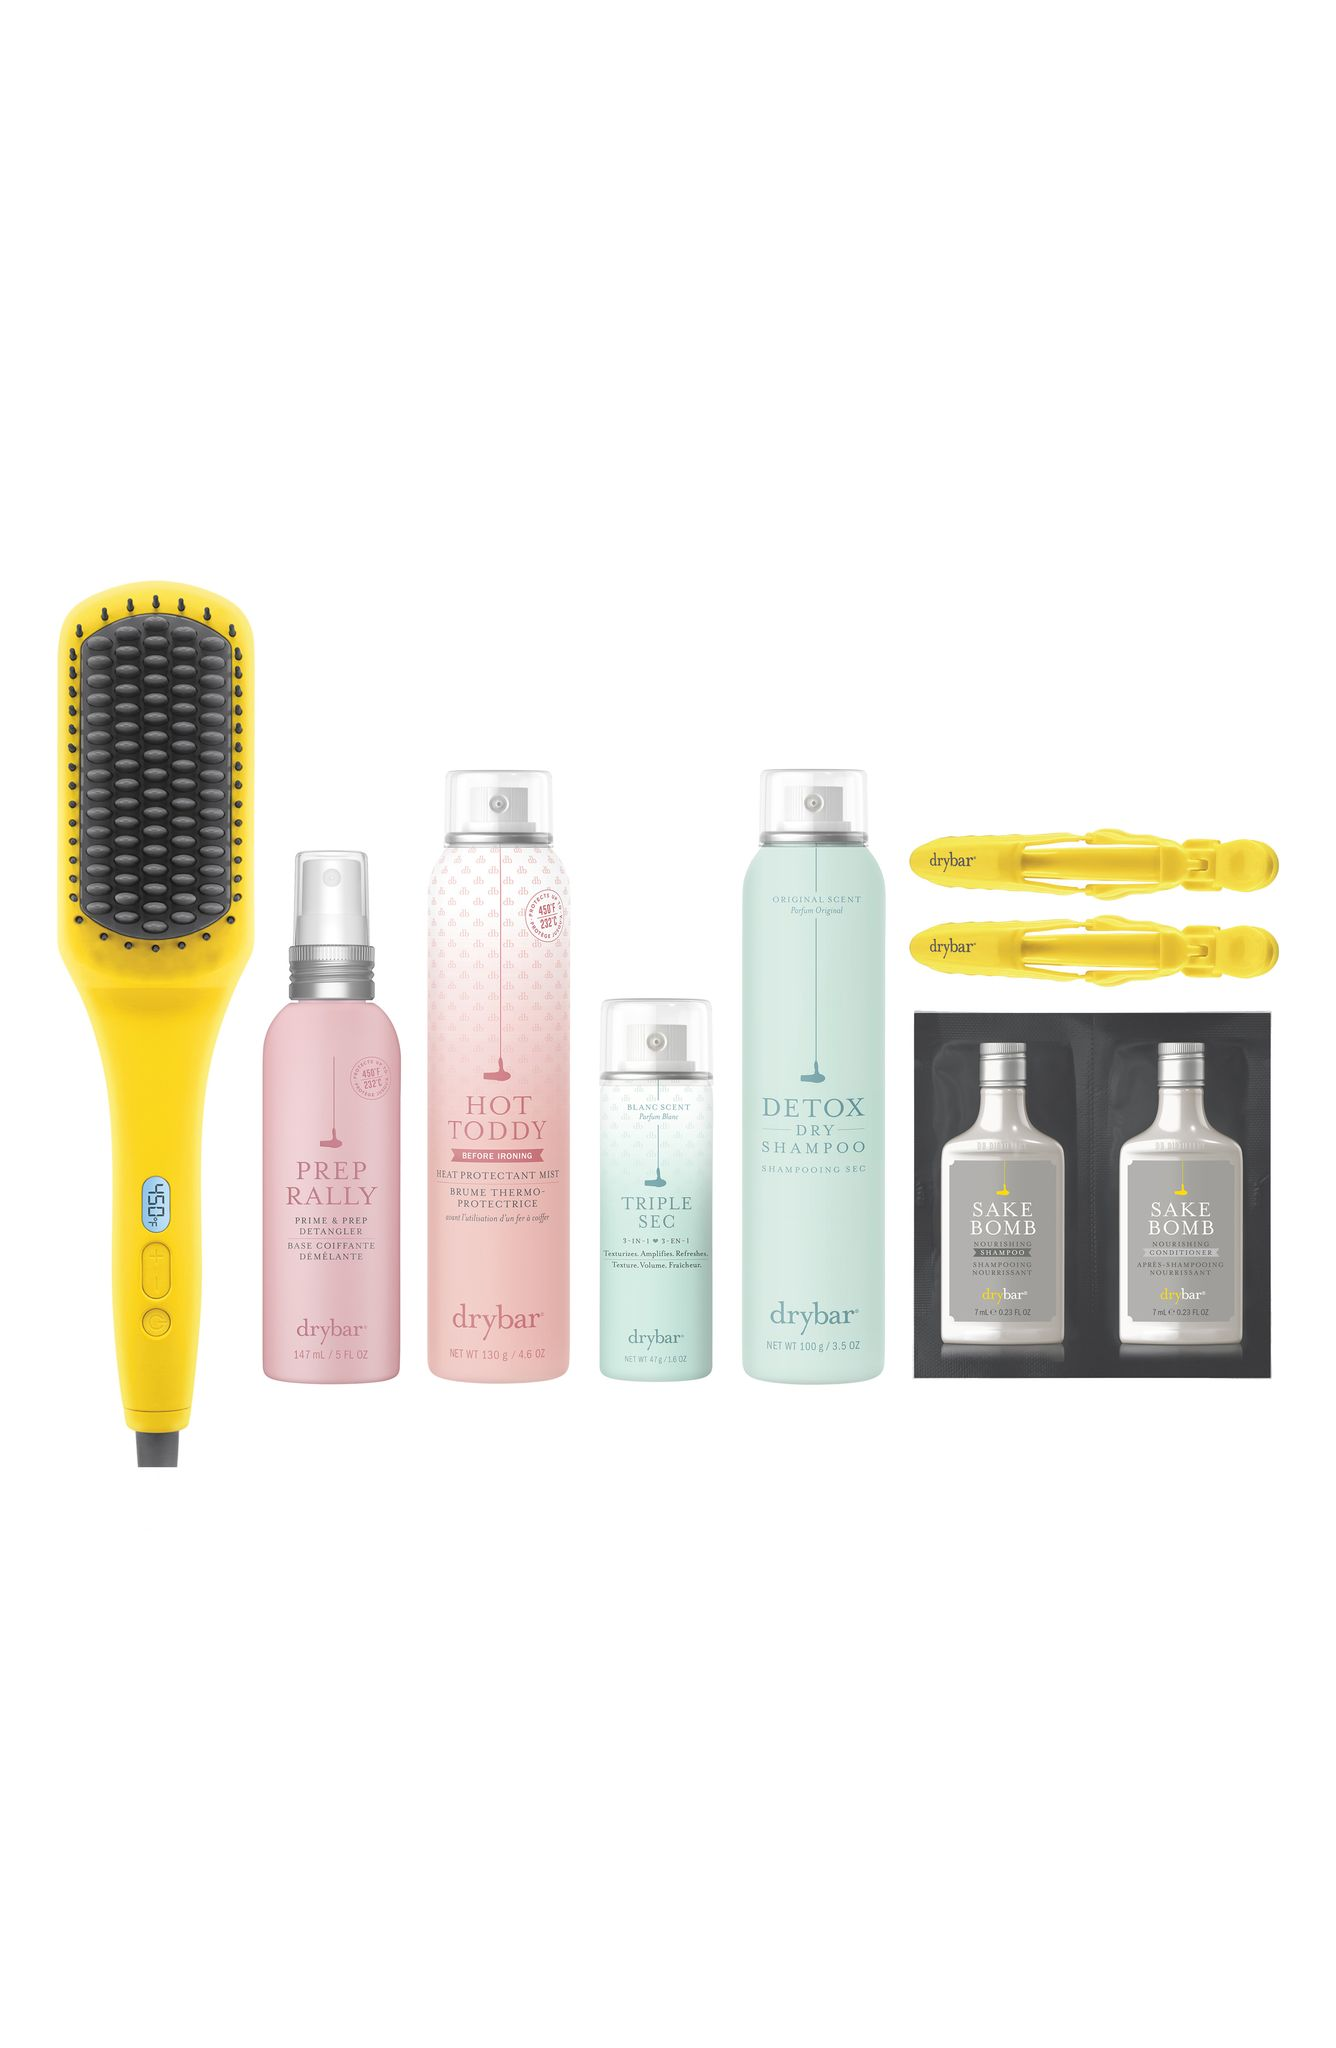 Drybar Get Brushin' and Crushin' Set (normally $238): NOW $165 (Image: Nordstrom){ }